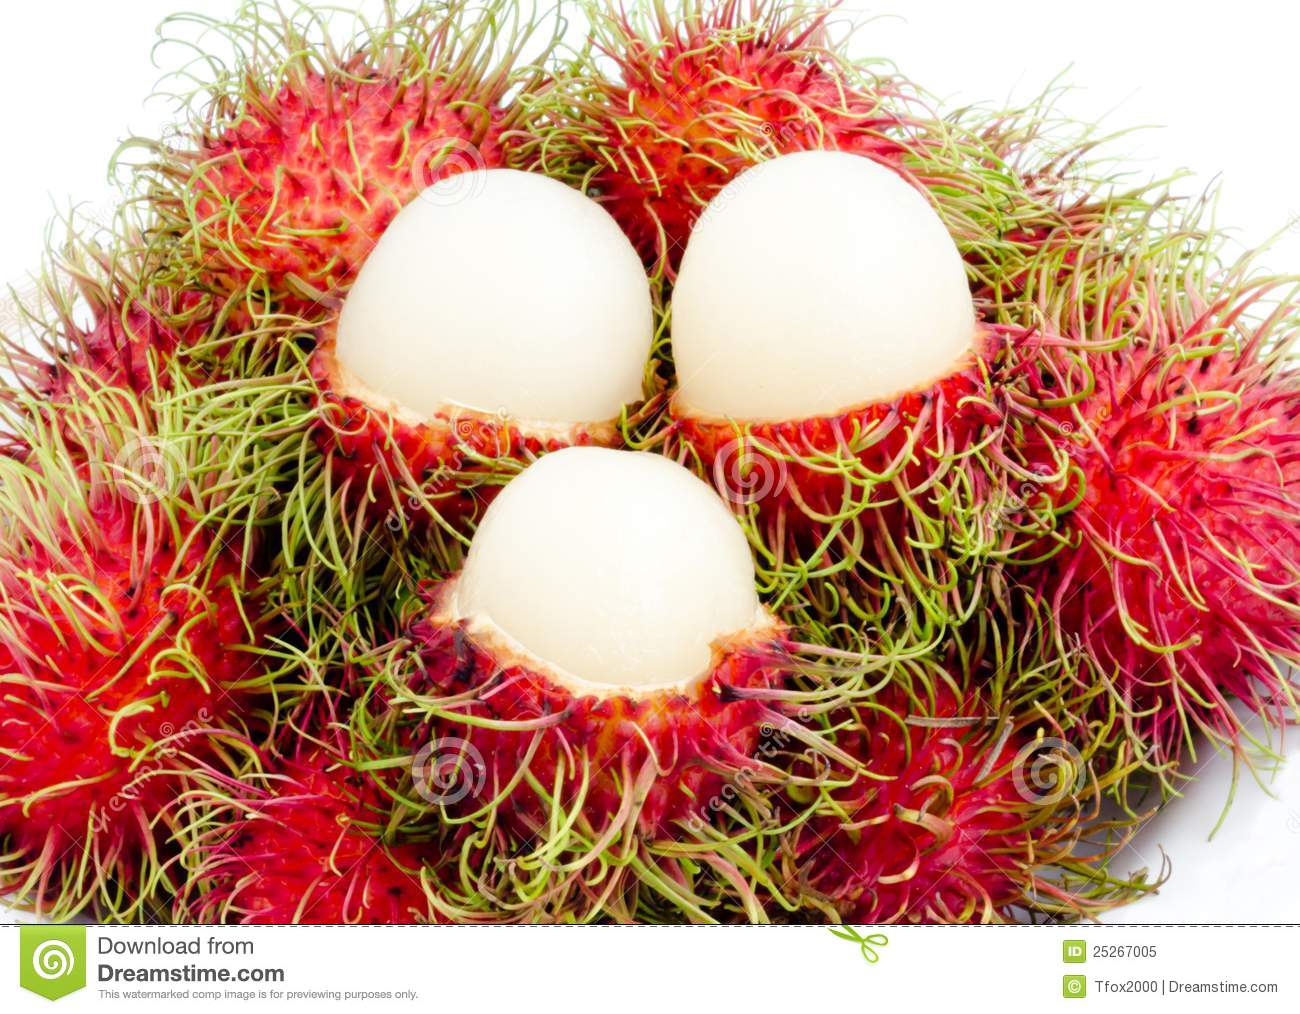 Fruit Thai Rambutan Royalty Free Stock Photo.